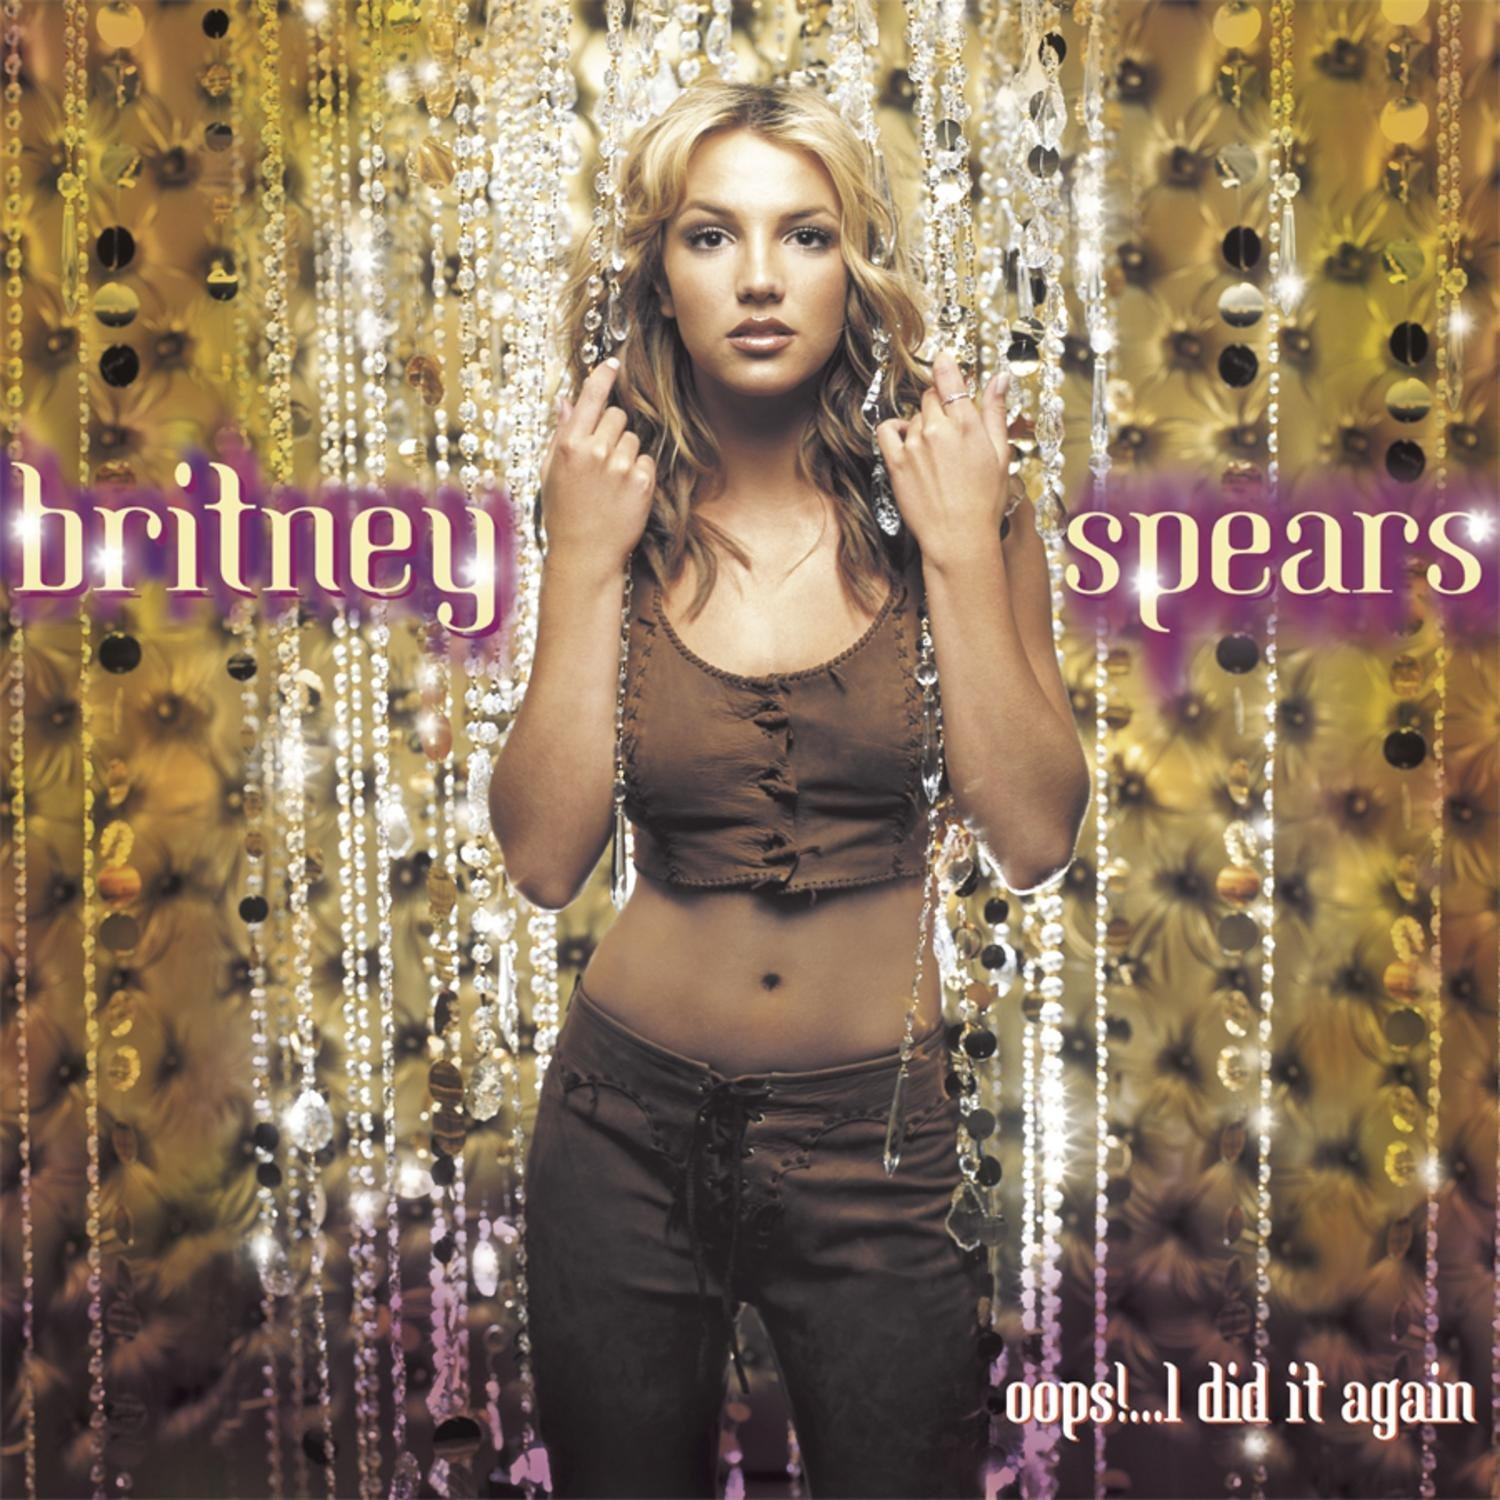 Britney Spears - Oops!... I Did It Again (2000) album cover